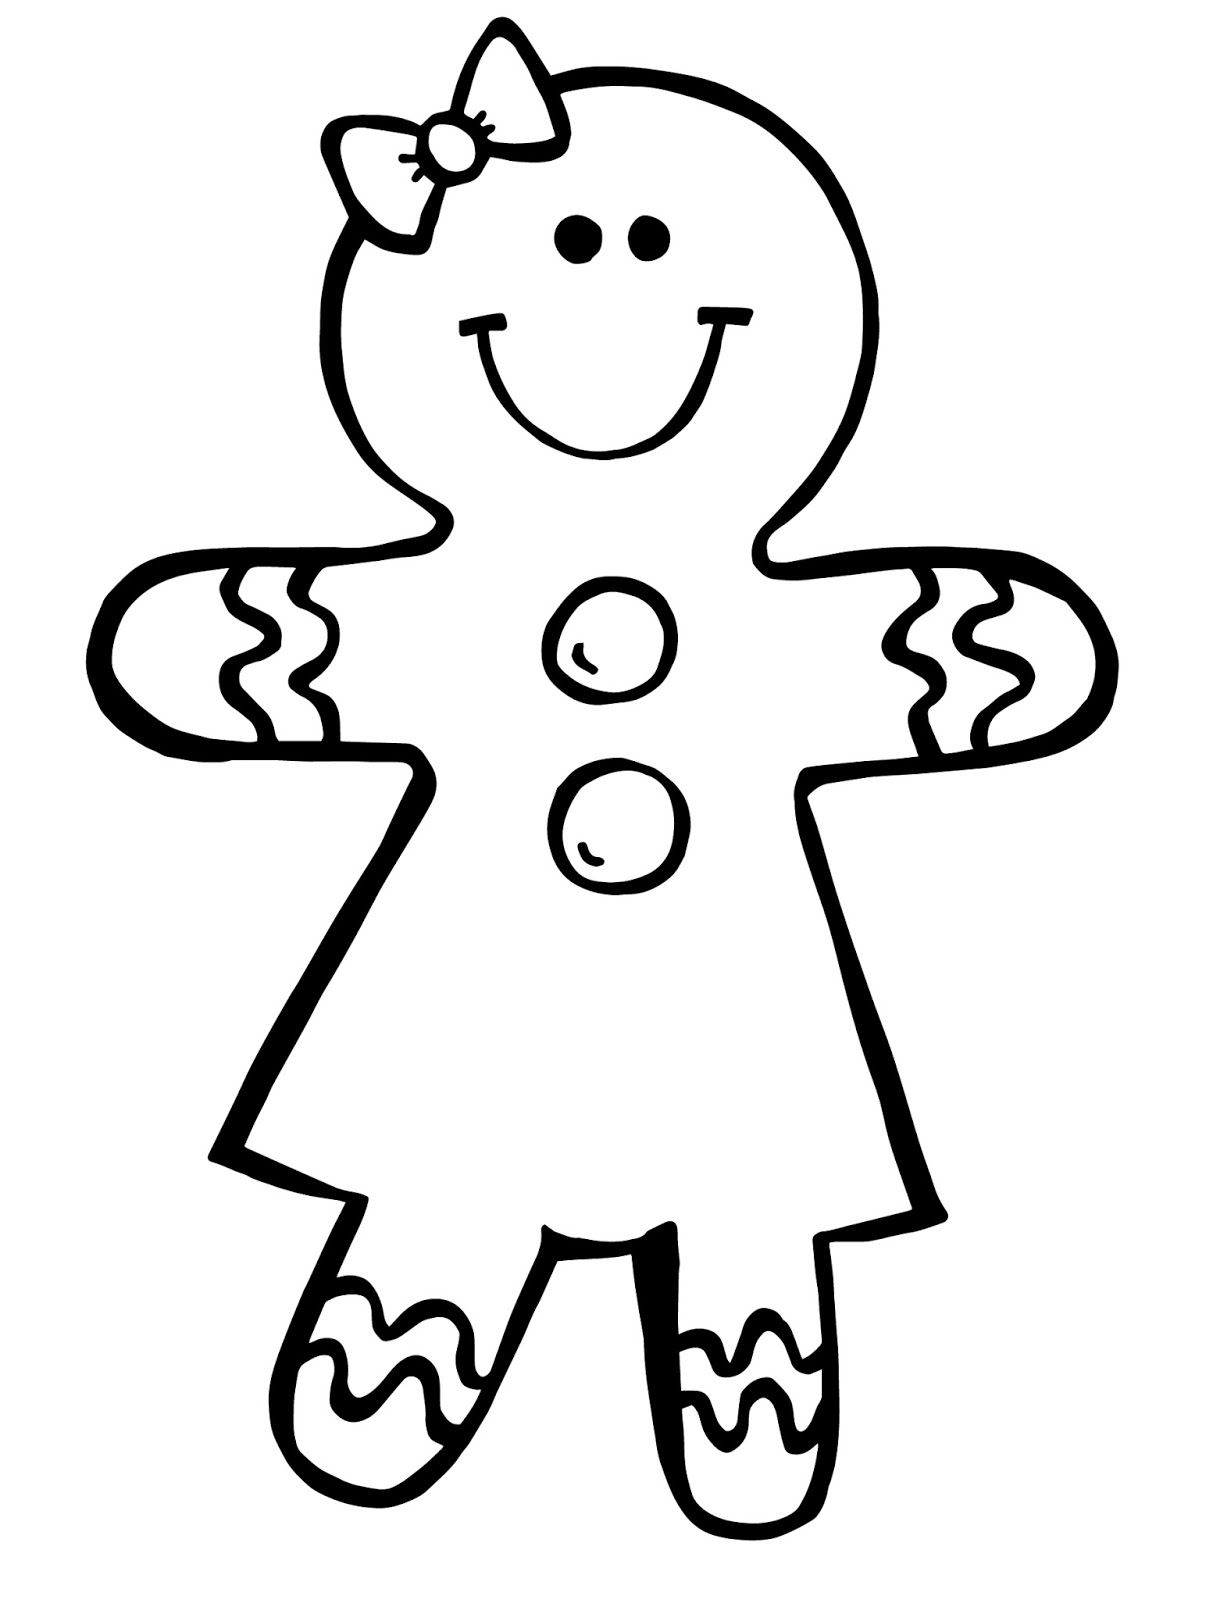 The Art of Teaching in Today's World: Gingerbread Boy & Girl Clipart.